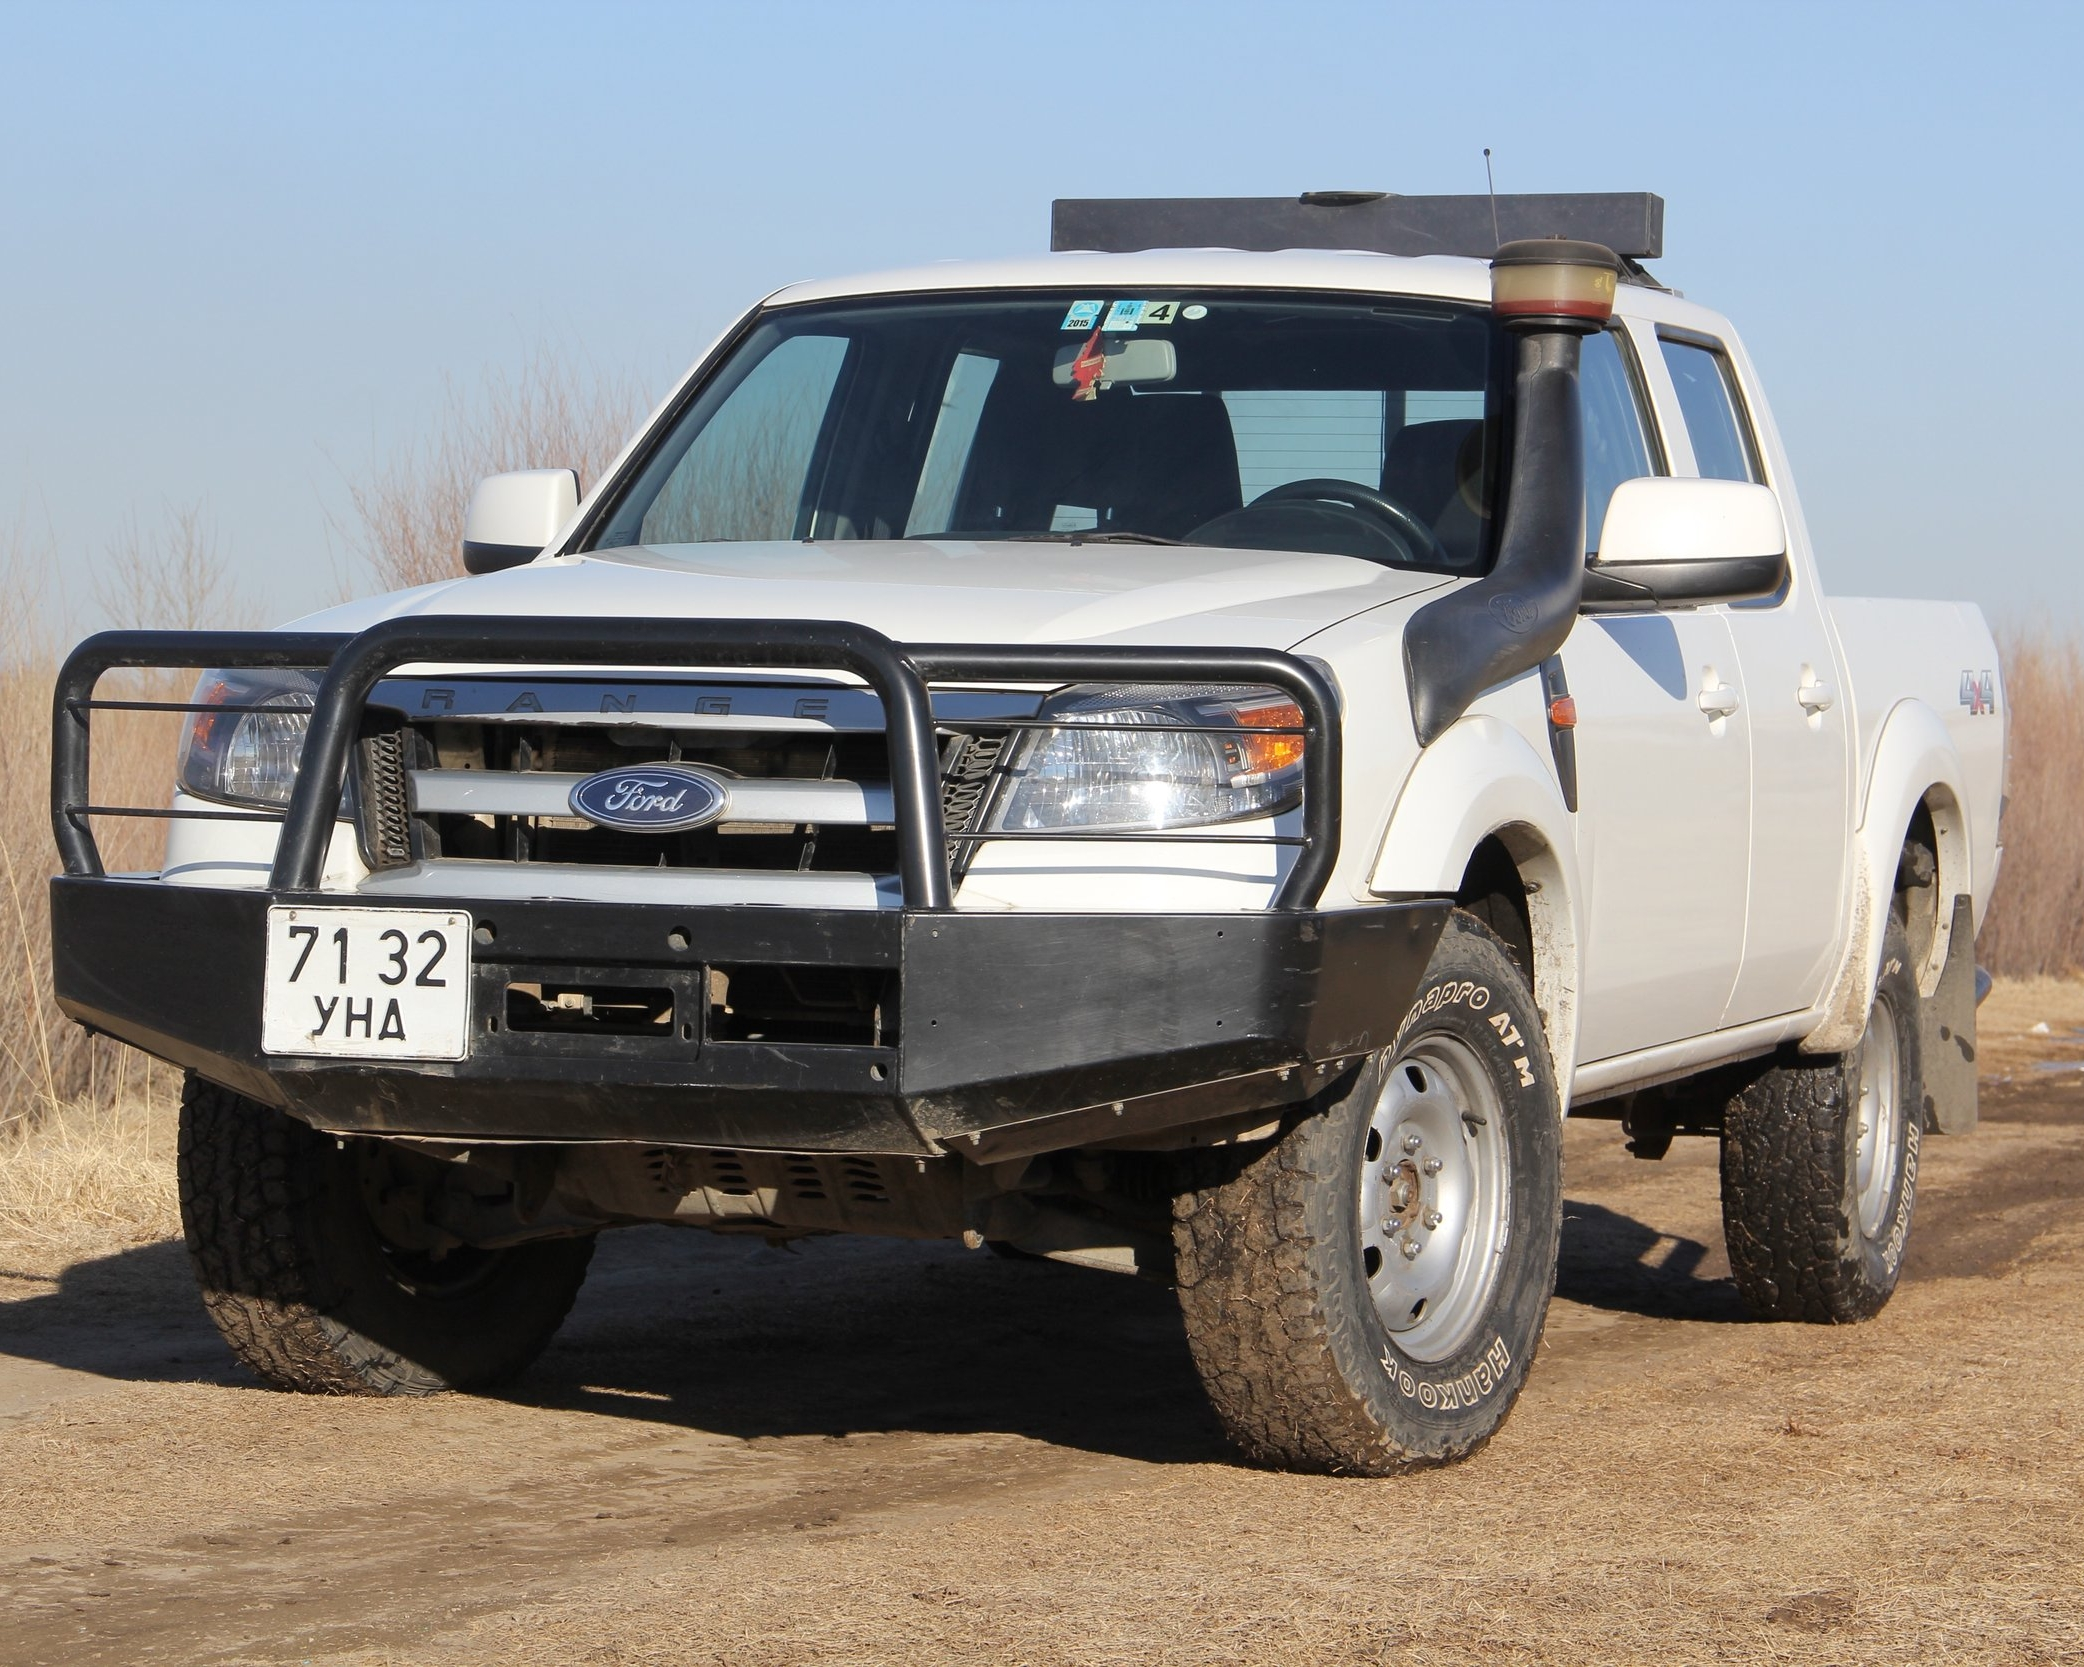 """FORD RANGER, 2011, MECHANIC, SUPPORT VEHICLE FOR A BIKE TOUR OR COMFORTABLE FOR 2 PAX.ALL OUR CARS ARE EQUIPPED WITH """"ARB"""" BUMPER AND WINCHES. WE'LL PROVIDE TWO EXTRA TIRES. ROOF TENTS ARE OPTIONAL AND IT CAN BE INSTALLED IN EVERY VEHICLE.AND WE HAVE """"LUGGAGE STORAGE SERVICE"""" WITH FREE OF CHARGE."""